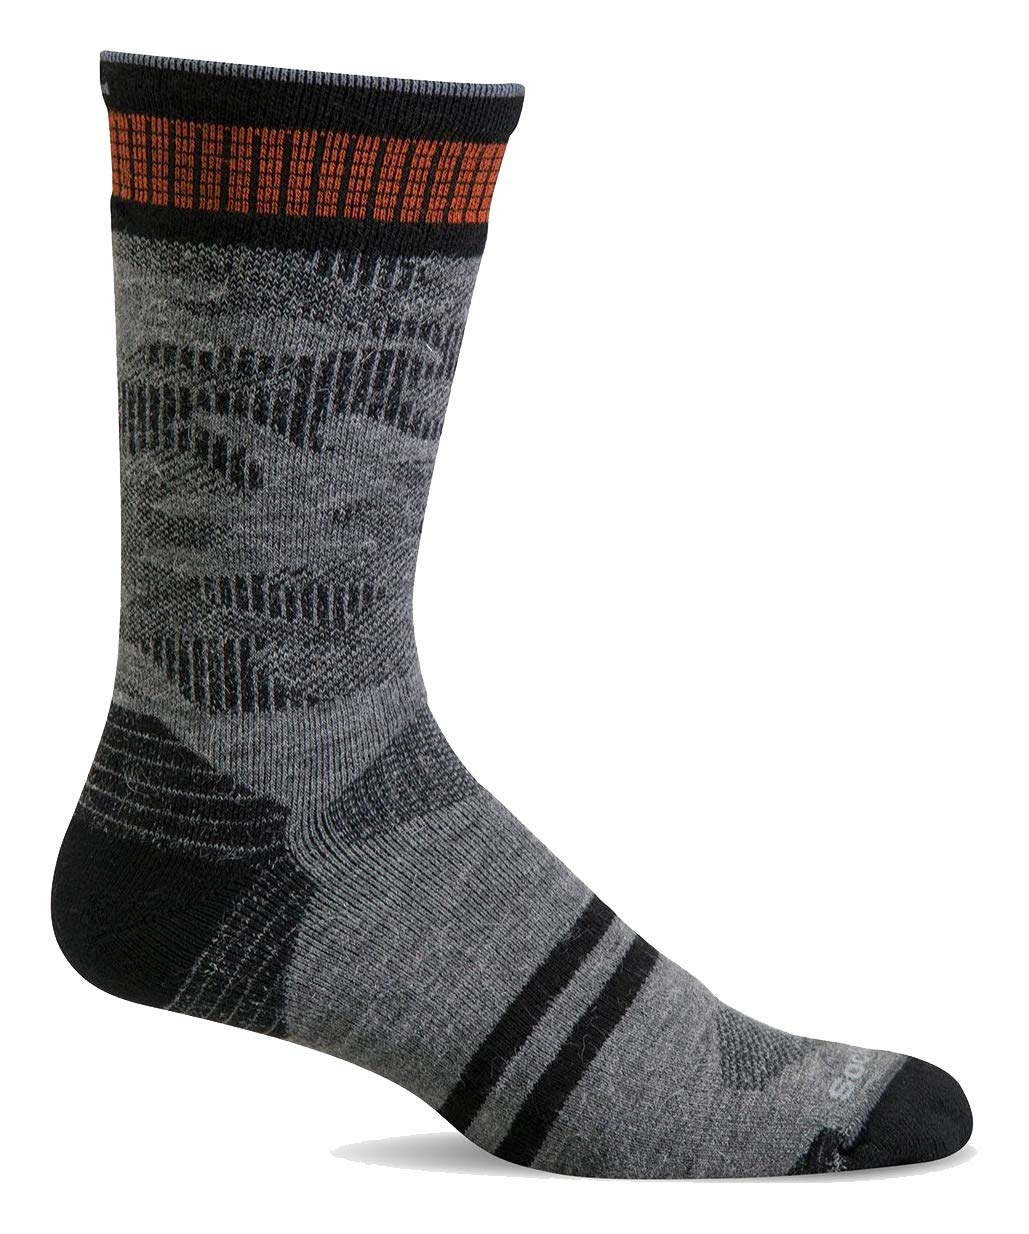 Sockwell Men's Camo Crew Moderate Graduated Compression Sock, Grey - L/XL by Sockwell